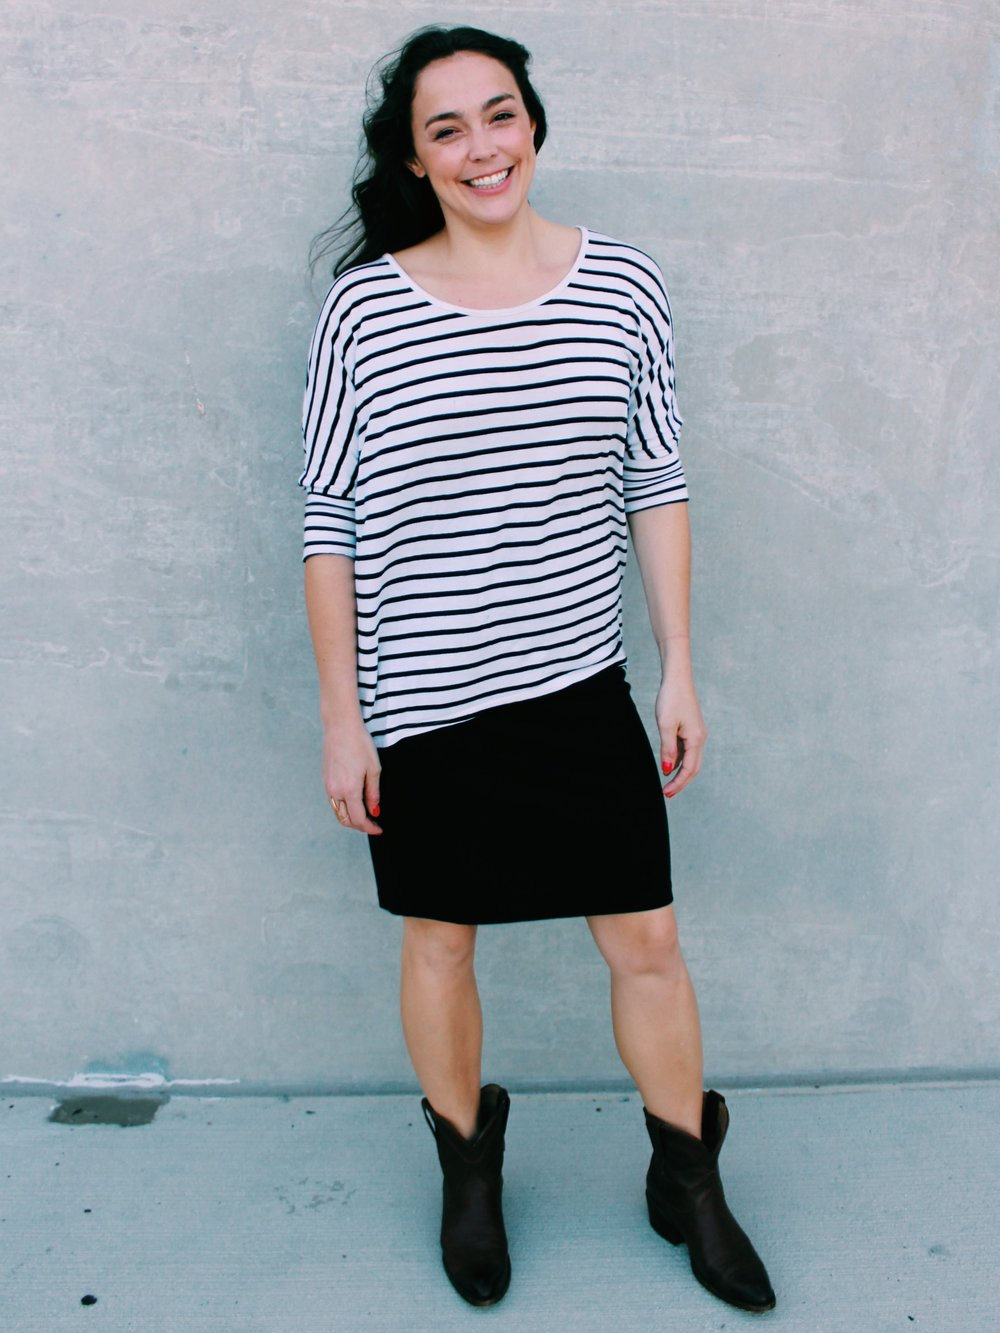 Greer Image Consulting - Blog - The Greer Guide to Style -Simple Styling Tricks - Stripes - Stripe Fashion - Black Boots - Cowboy Boots - Style - Fashion